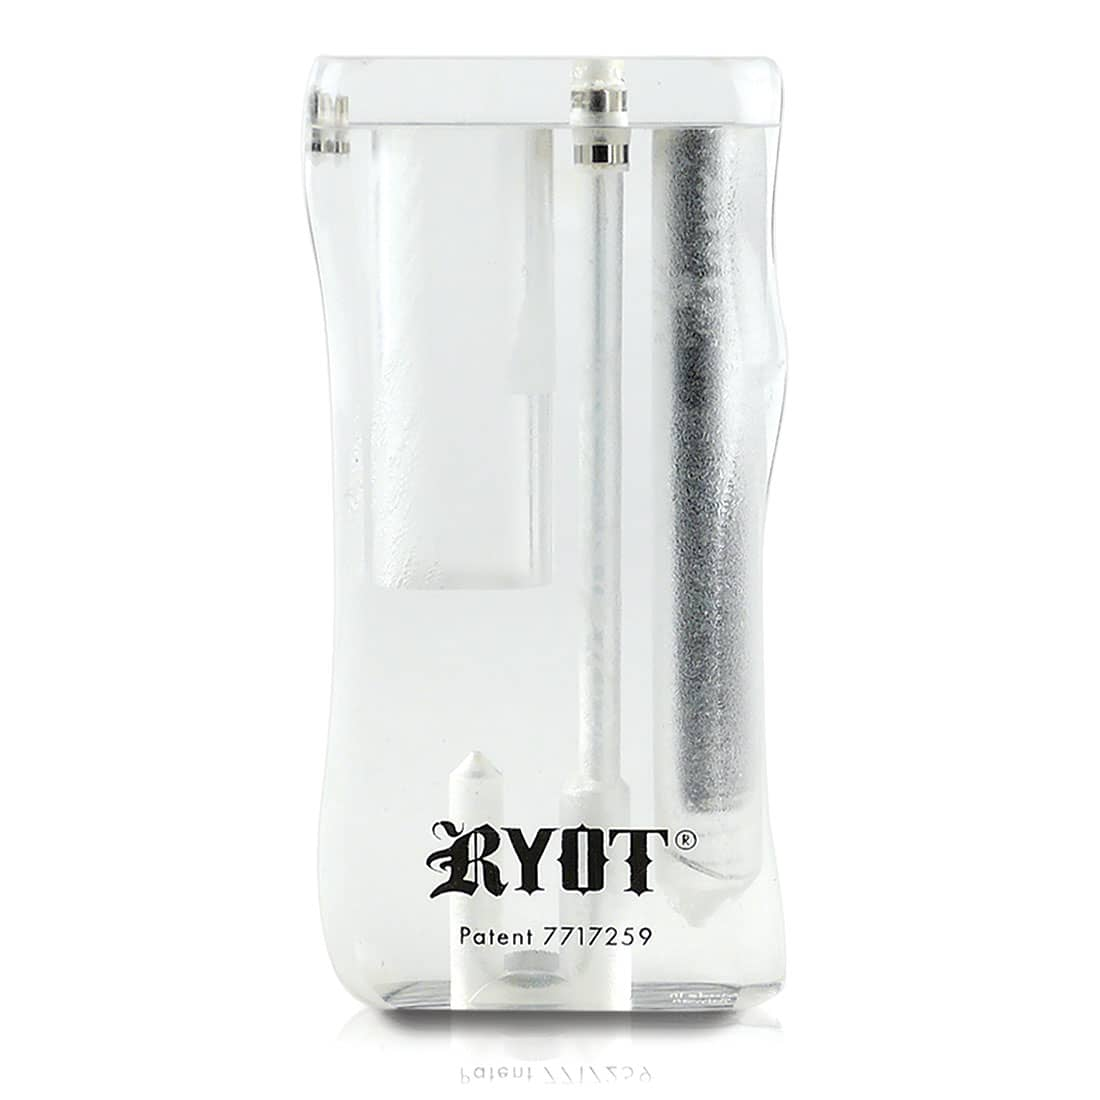 RYOT - Large Acrylic Dugout Assorted Magnetic Taster Box (6-Pack)